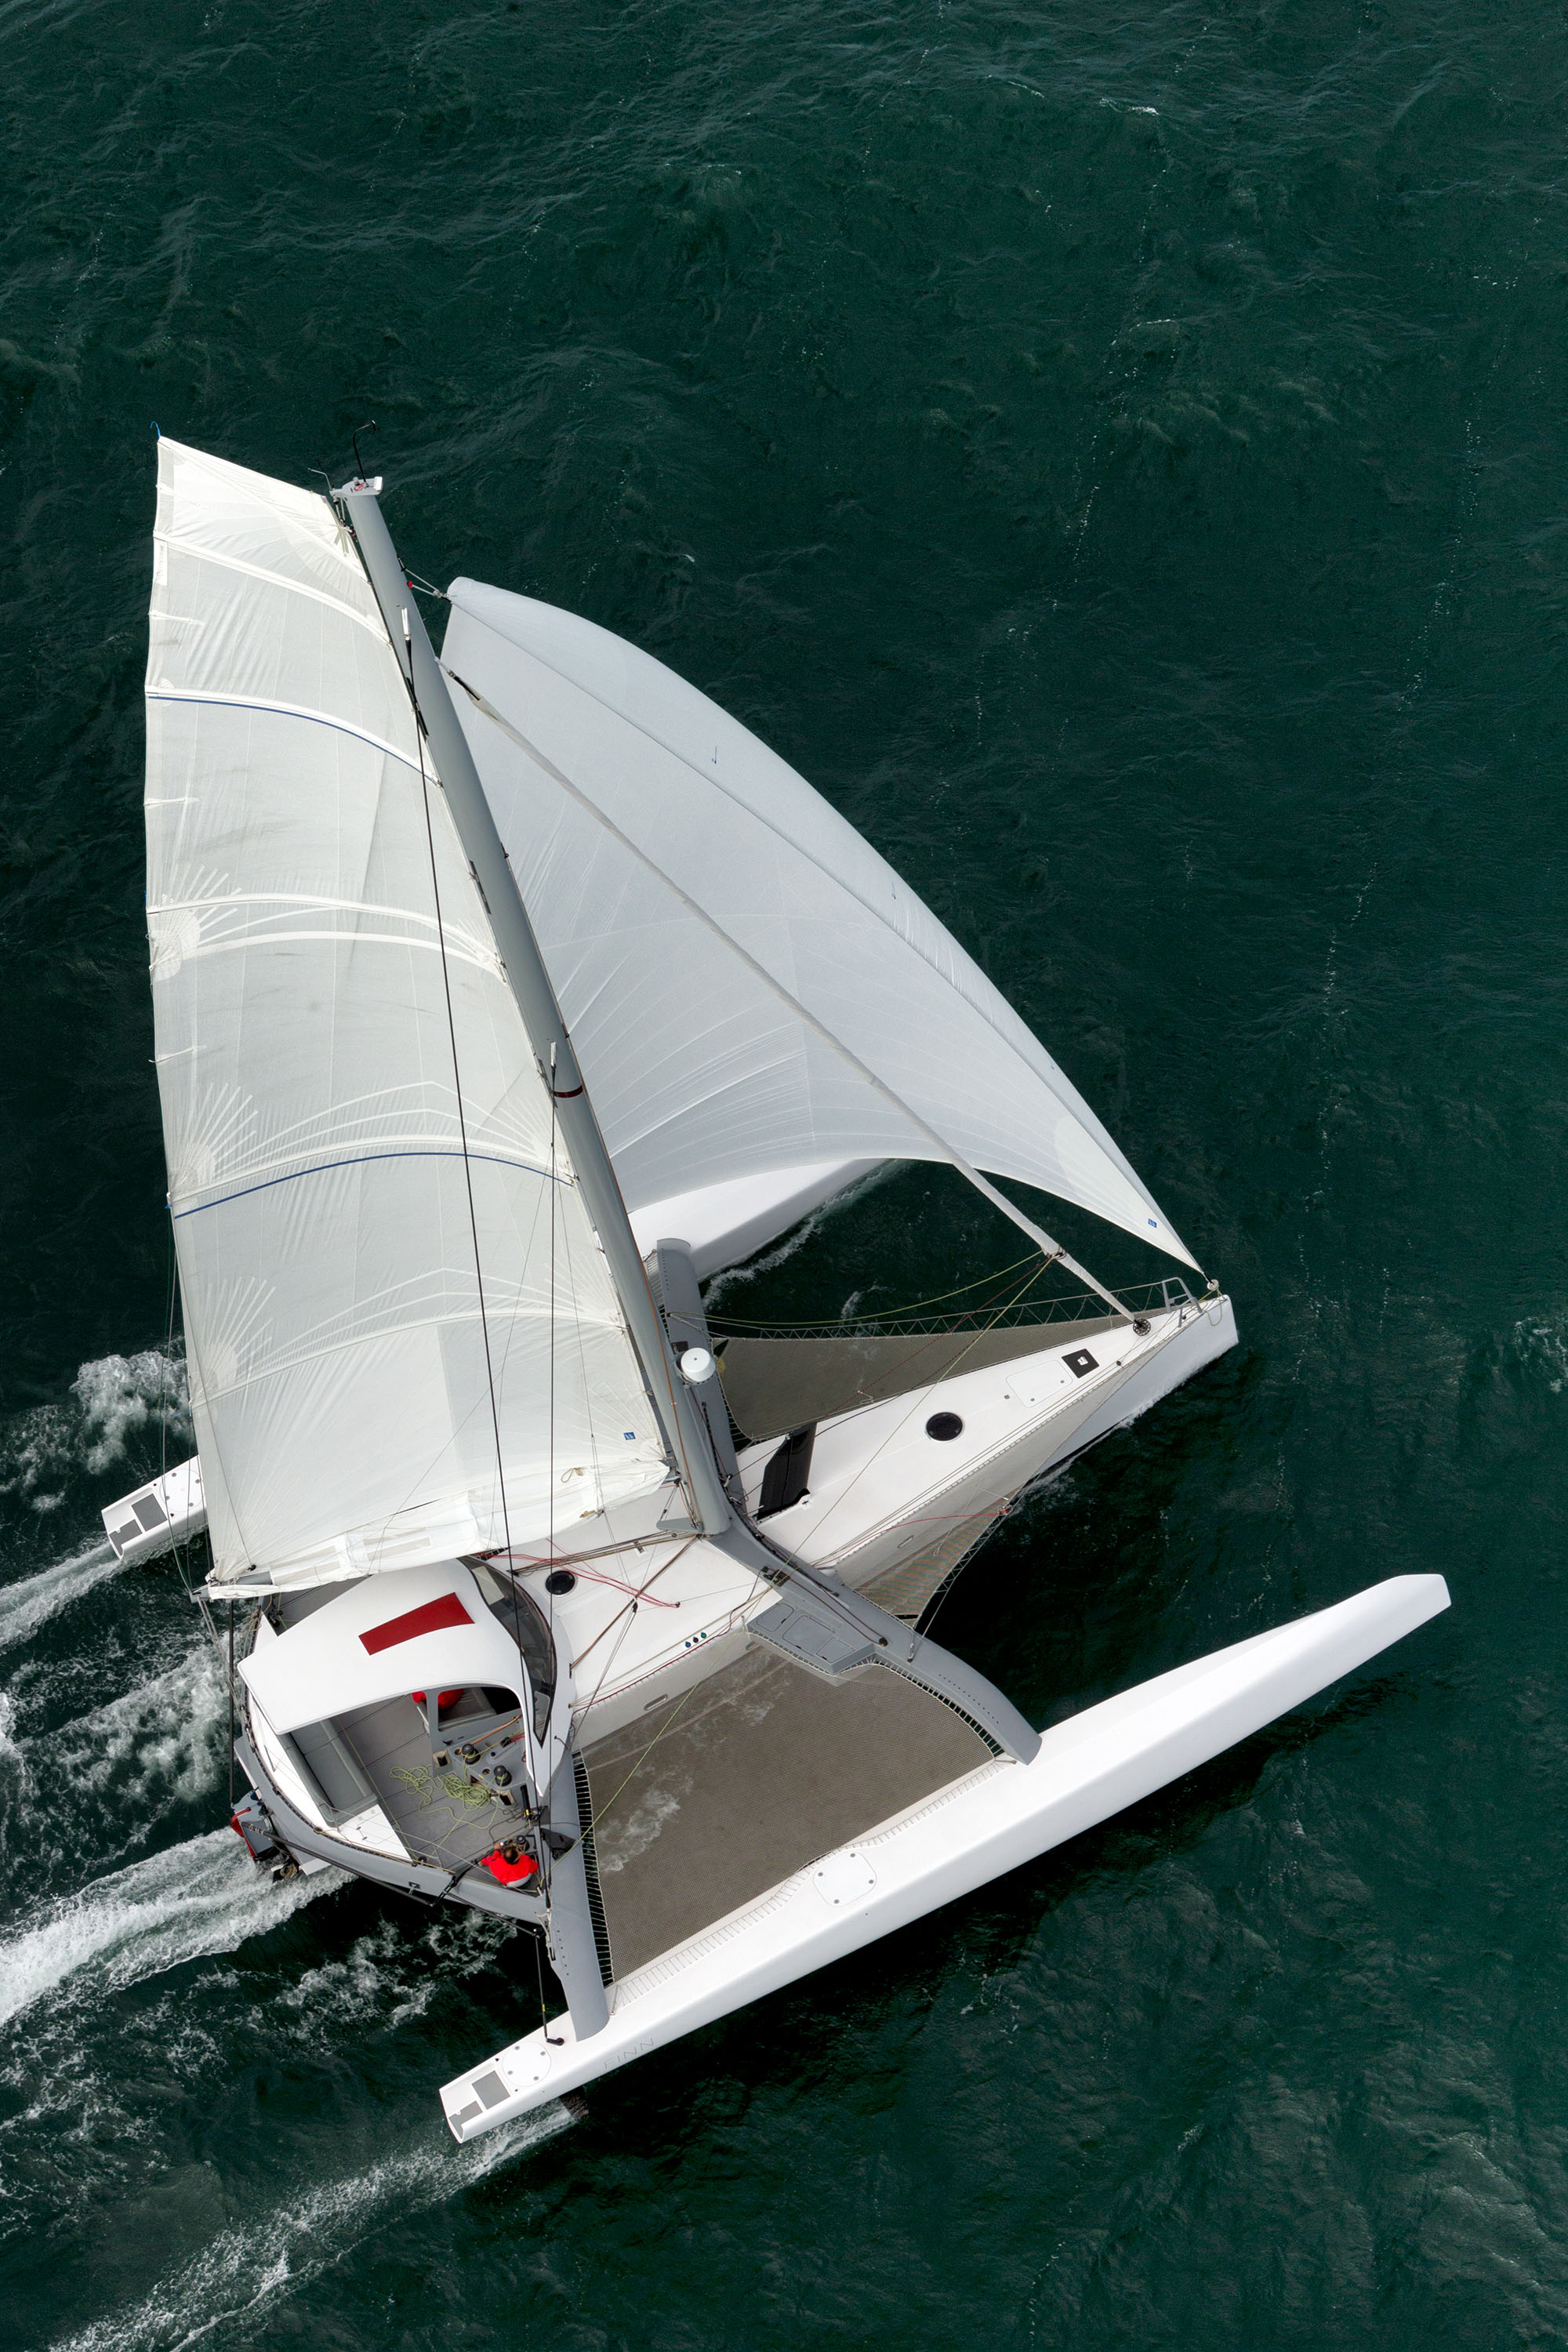 Sailboard-inspired rig - We have all seen sailboards with their masts raked back and windward and the sailors weight well aft. FINN does the same thing.With a rotating and canting Lorima high modulus carbon spreader-less rig, and an aft ballast tank, the trim and righting moment are greatly enhanced. During a tack, touch a button at either helm pod and the hydraulic ram releases the rig to drop to leeward. Push the tiller over and release the mast rotation and you come out of a tack in less than half a boat length with very little loss of speed.Spreaders are a failure point. Each turnbuckle is a failure point. They are a pain in the ass to tune. Take a traditional rig off and you will spend days tuning the rig, often with professional help. I can't thank Bruno and Renaud enough for advising me to do a spreader-less rig. It is possible because of the large beam of a trimaran. It's not only bomb-proof, its always in tune. The two shrouds meet and then join to spectra which is connected to a ram on the aft side of the aft crossbeam. When one ram lets out, the other pulls in. To cant, the rig is either dropped before tacking, or pulled hydraulically while sailing with the press of a button on the nav pod. This same setup allows the rig to come off the boat in minutes by pulling the three large terminal pins. Its simple and robust, a characteristic of French racing designs.